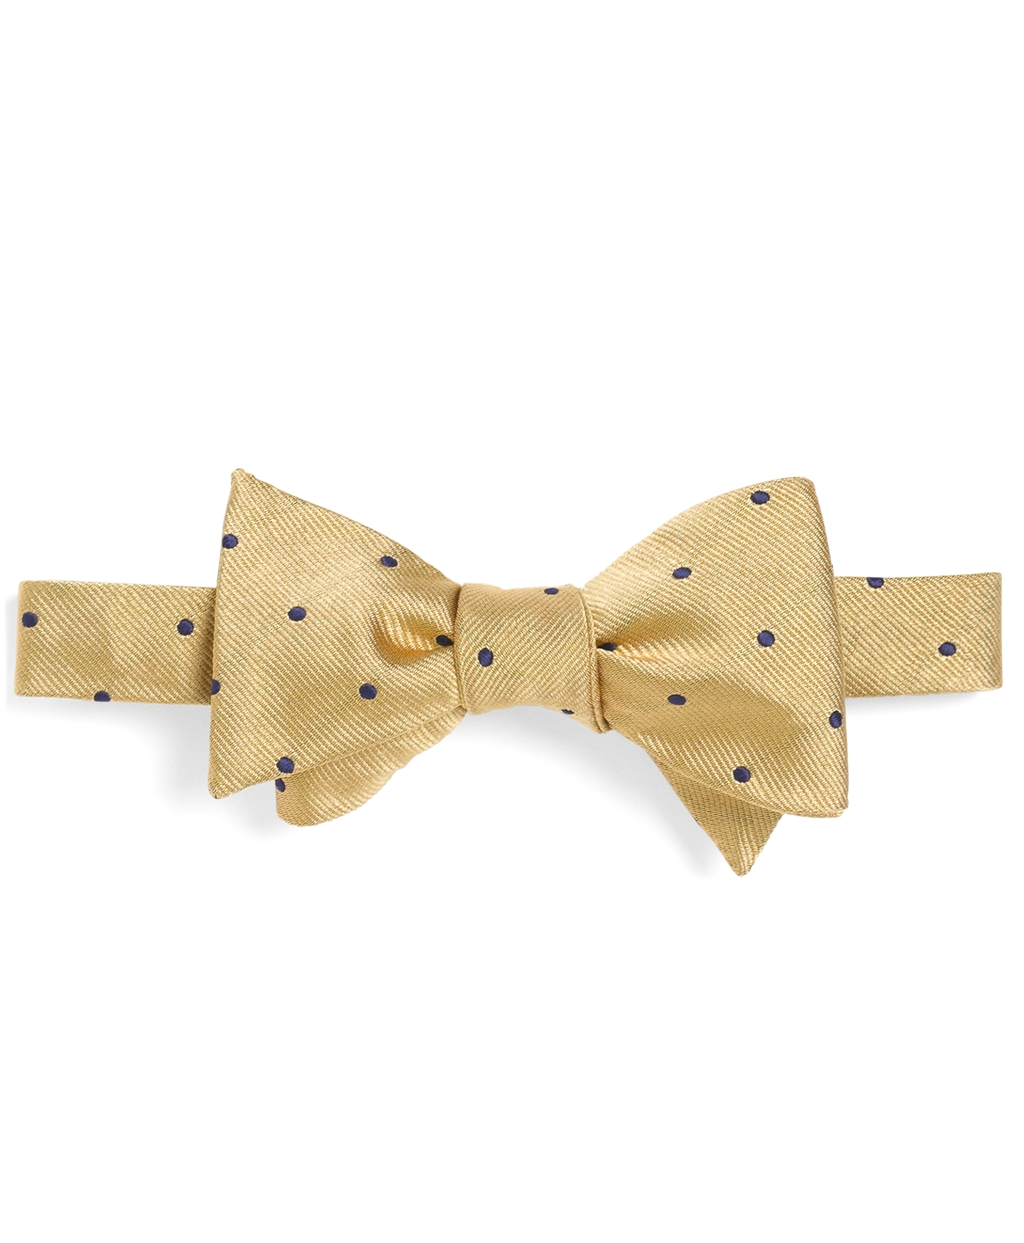 1920s Bow Ties | Gatsby Tie,  Art Deco Tie Brooks Brothers Mens Dot Bow Tie $59.50 AT vintagedancer.com